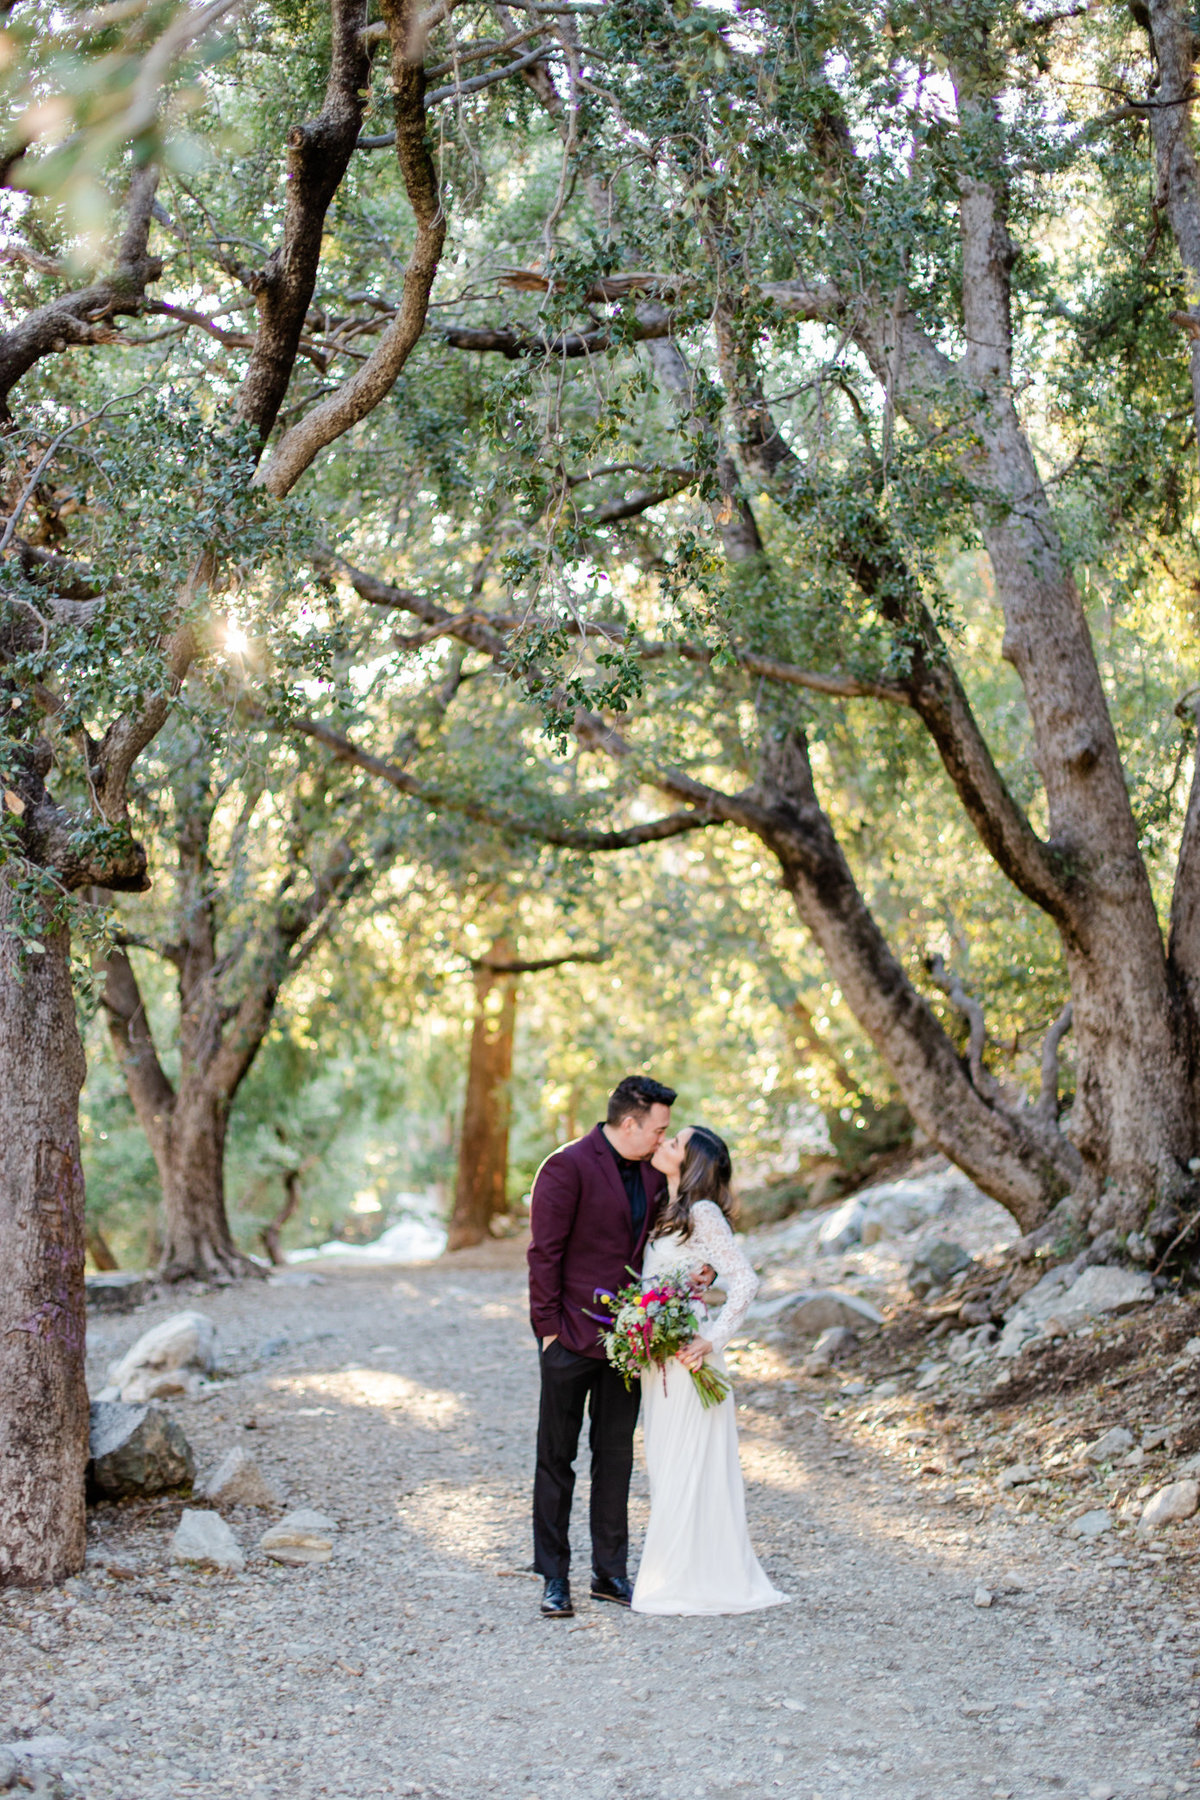 Mt. Baldy Elopement, Mt. Baldy Styled Shoot, Mt. Baldy Wedding, Forest Elopement, Forest Wedding, Boho Wedding, Boho Elopement, Mt. Baldy Boho, Forest Boho, Woodland Boho-34